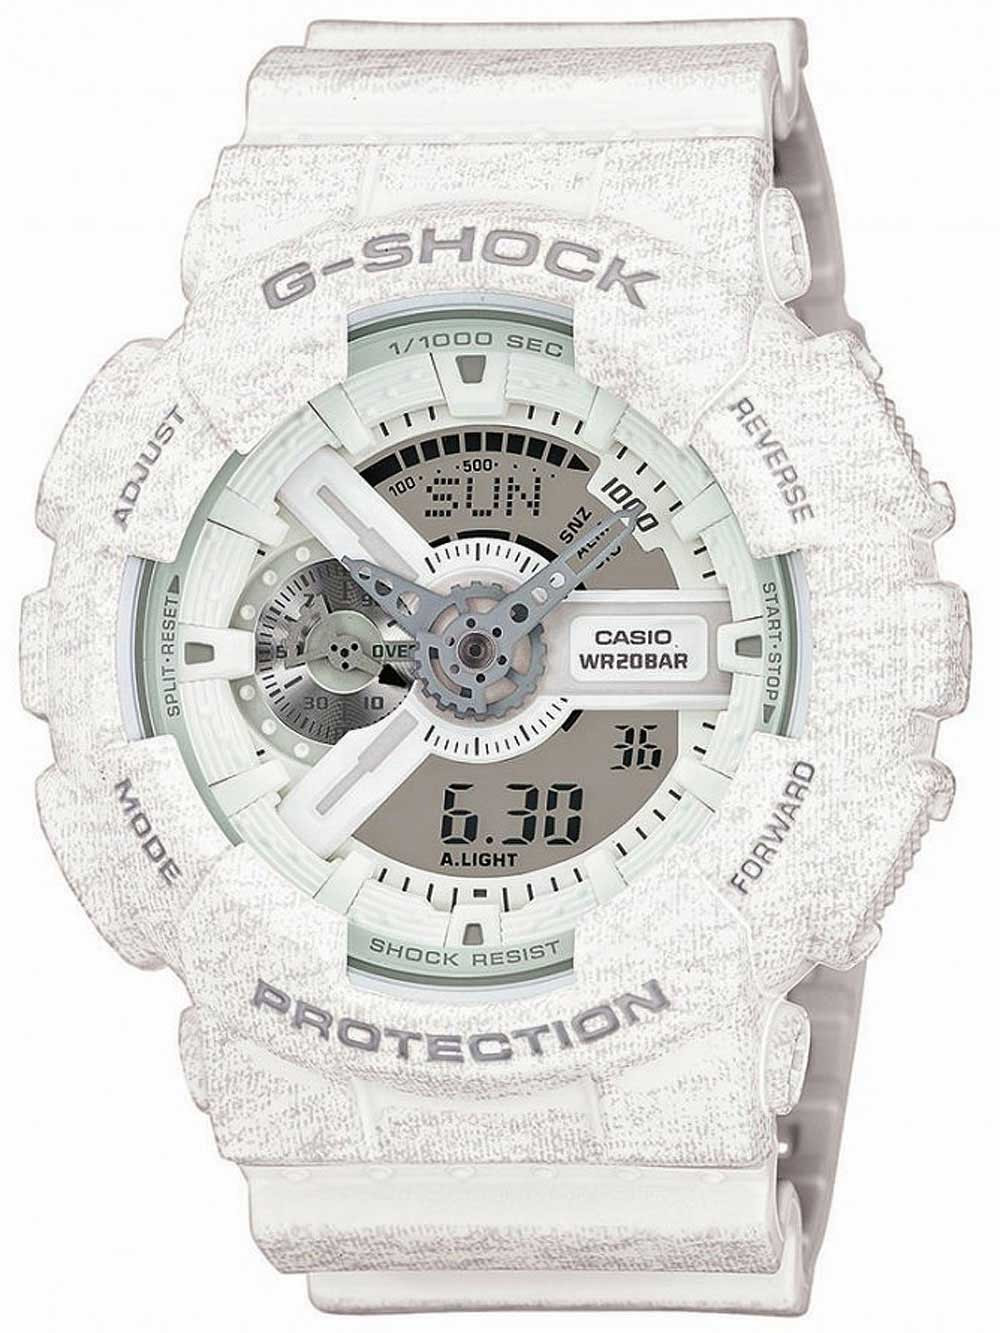 CASIO GA-110HT-7AER G-SHOCK 51mm 20ATM